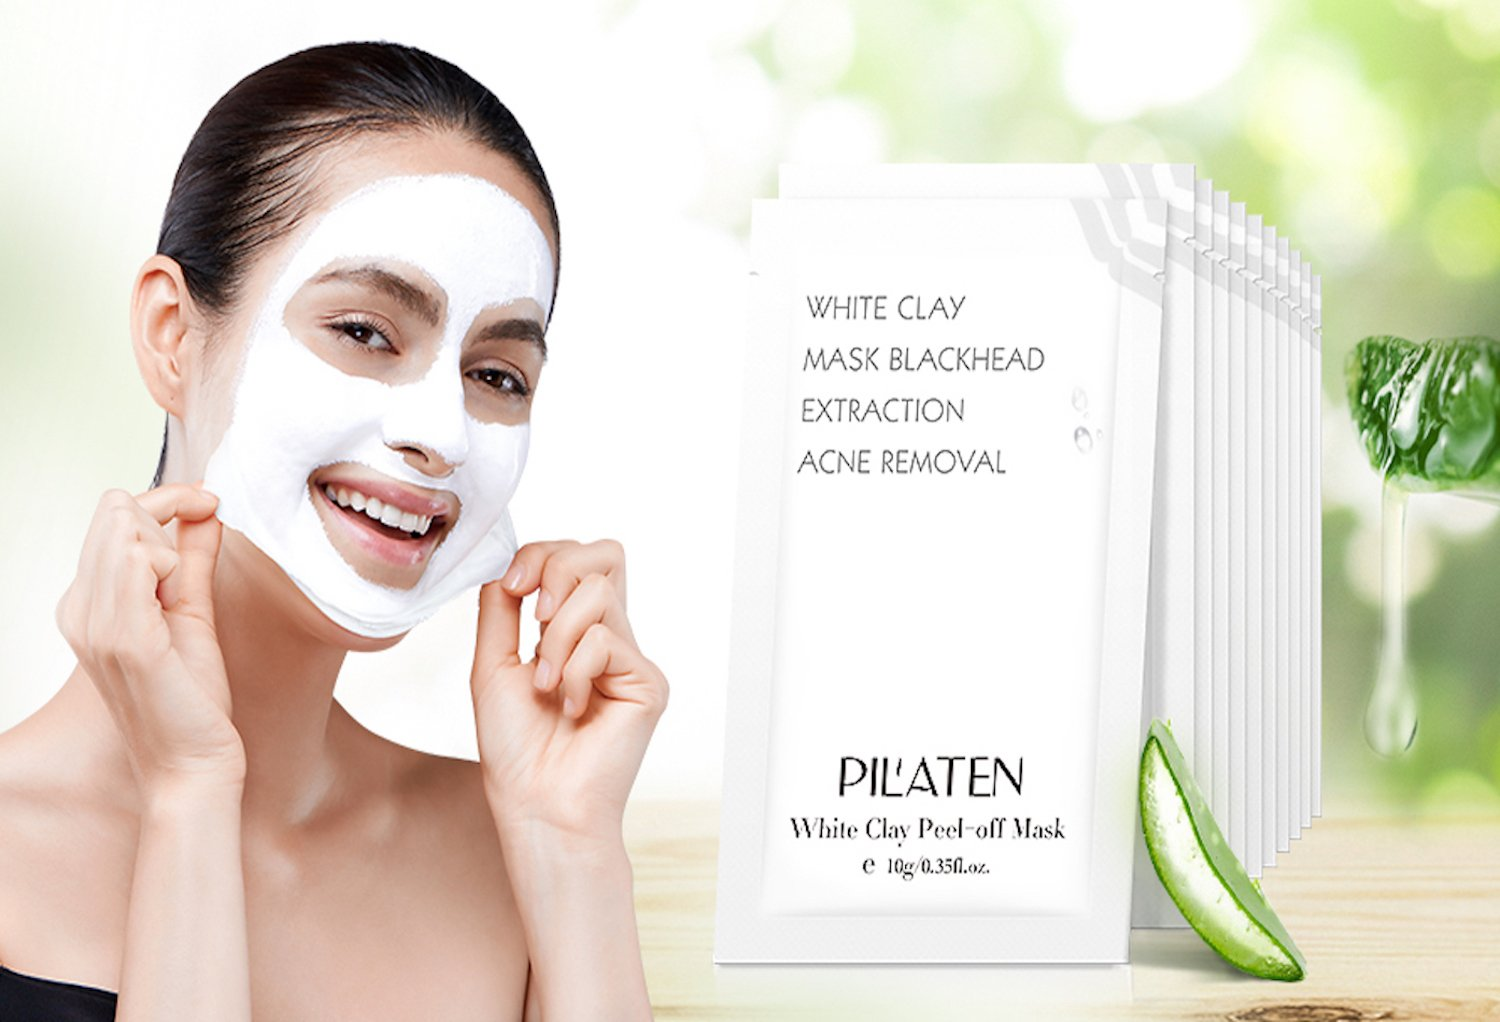 Mascarilla Peel-Off de Arcilla Blanca 10 gr - White Clay Mask - Pilaten 2872